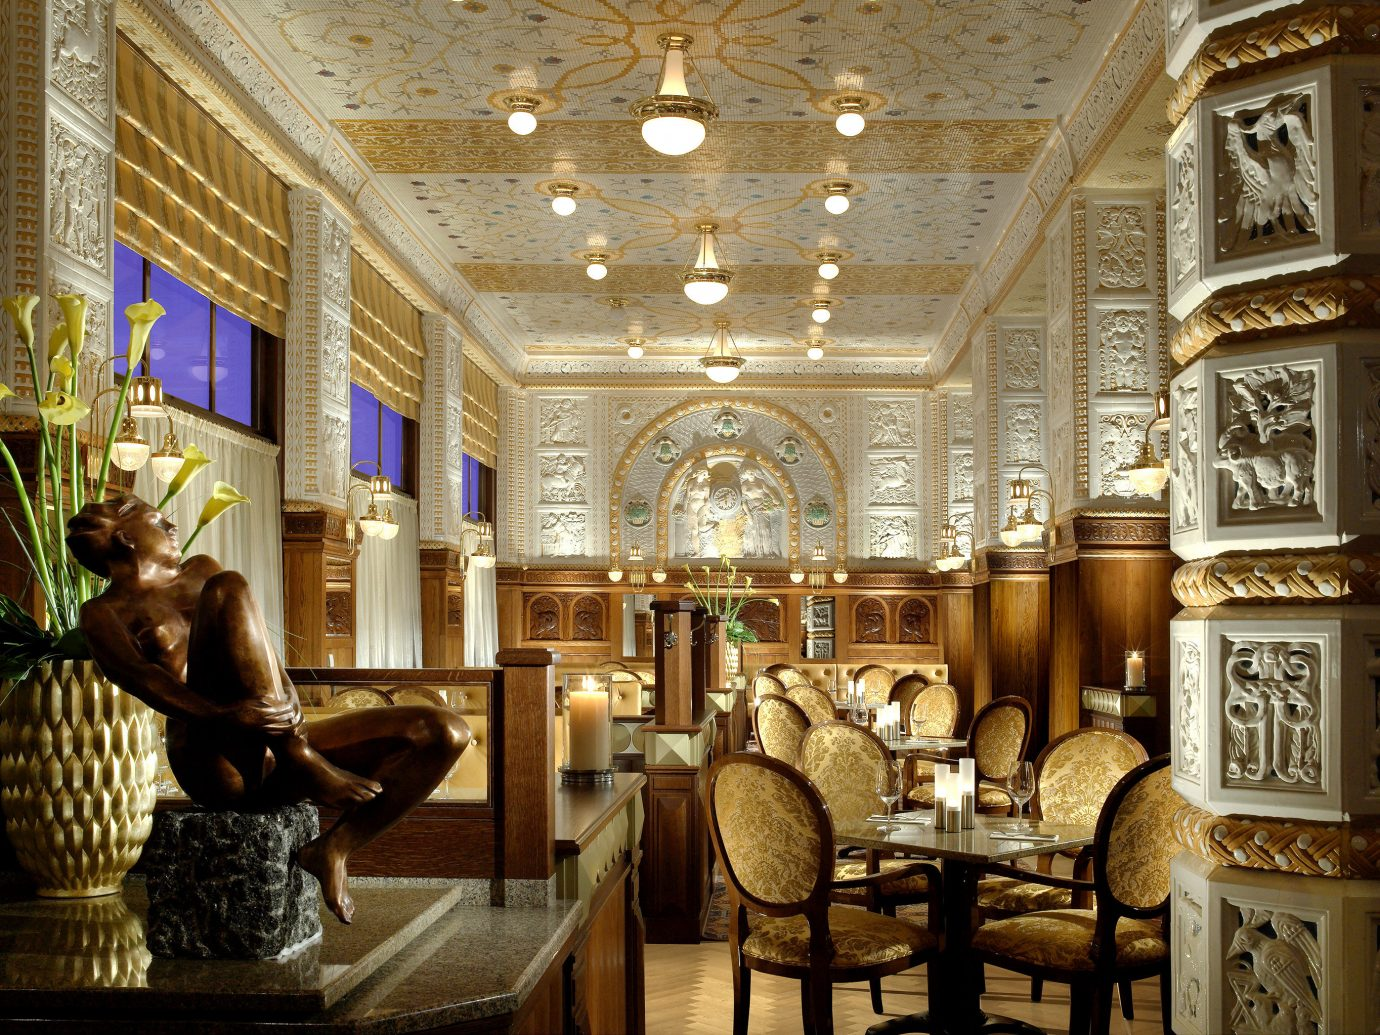 Bar Budget Dining Drink Eat Elegant Hotels indoor Lobby building ceiling estate palace interior design ancient history ballroom mansion synagogue tourist attraction furniture several